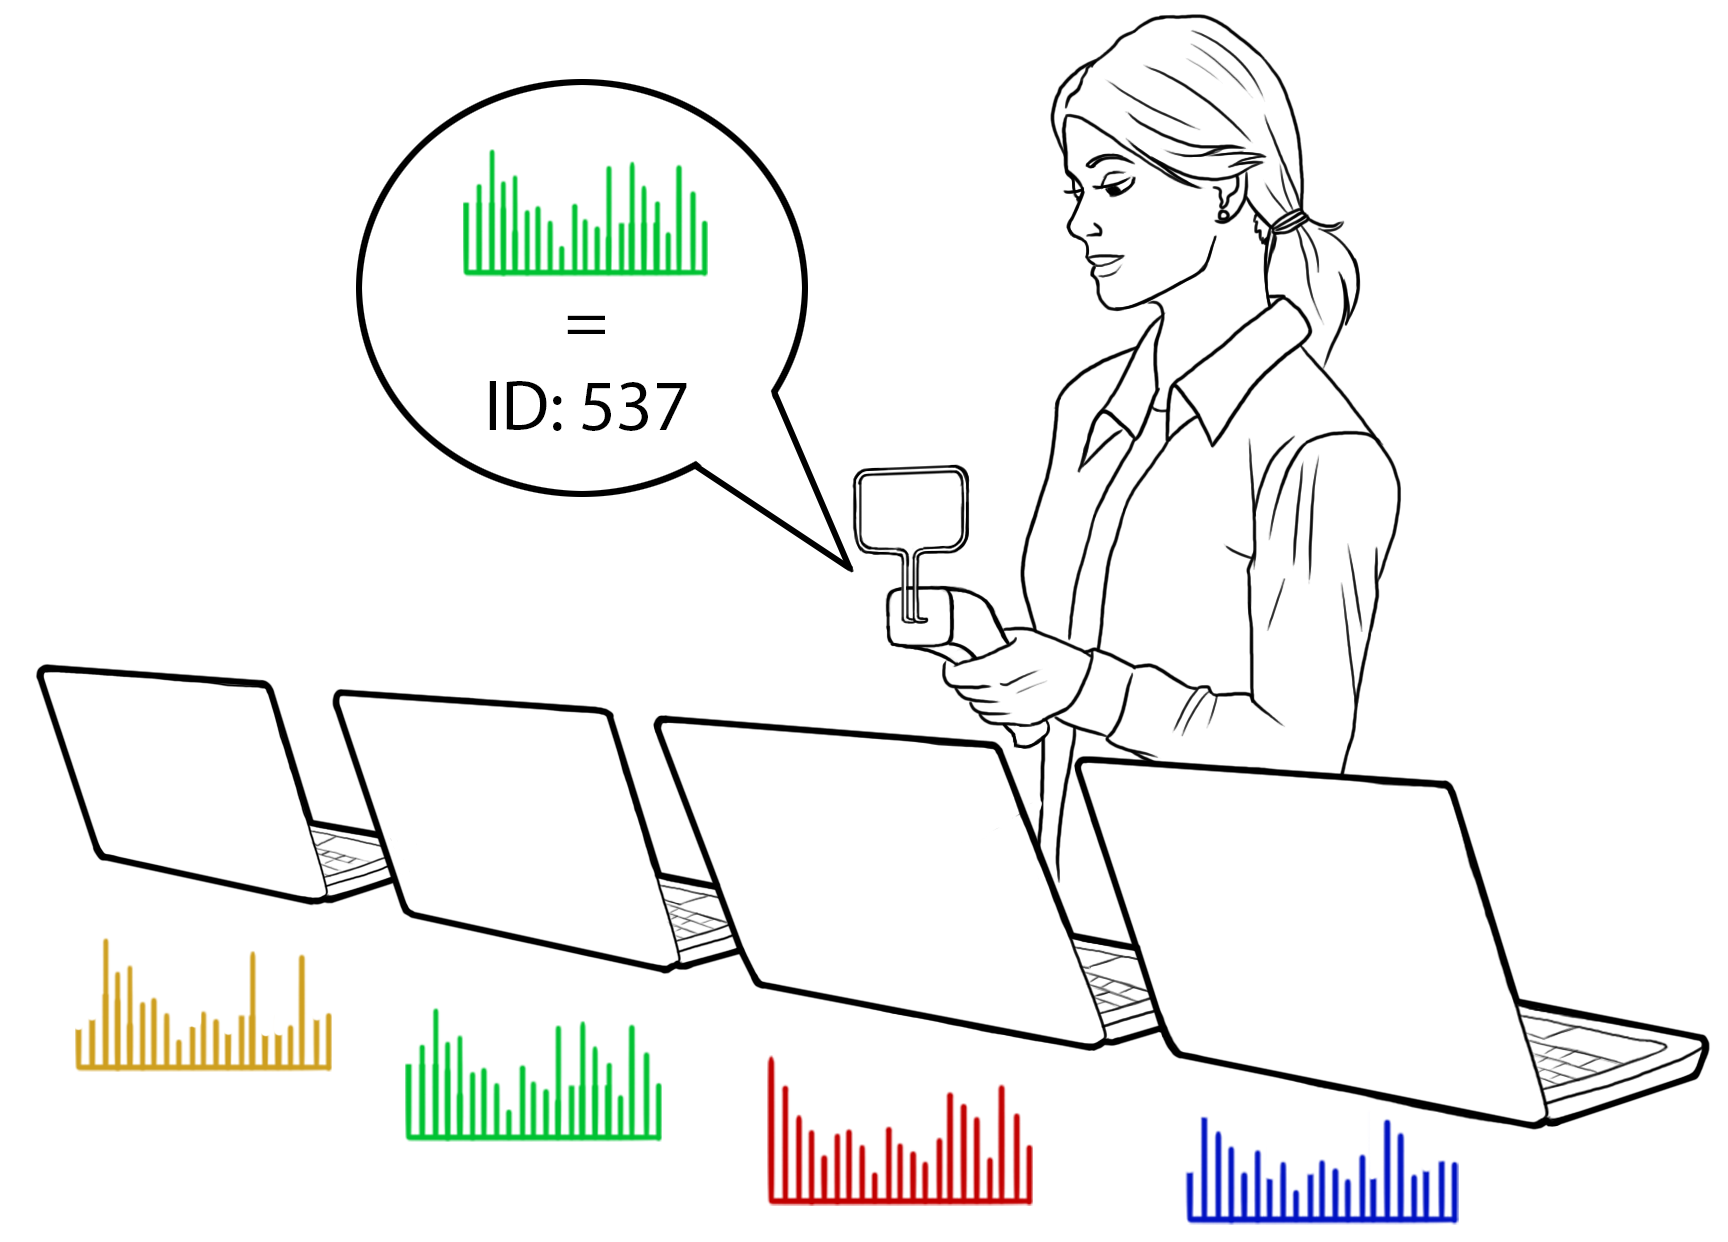 EM-ID- Tag-less Identification of Electrical Devices via Electromagnetic Emissions-Image